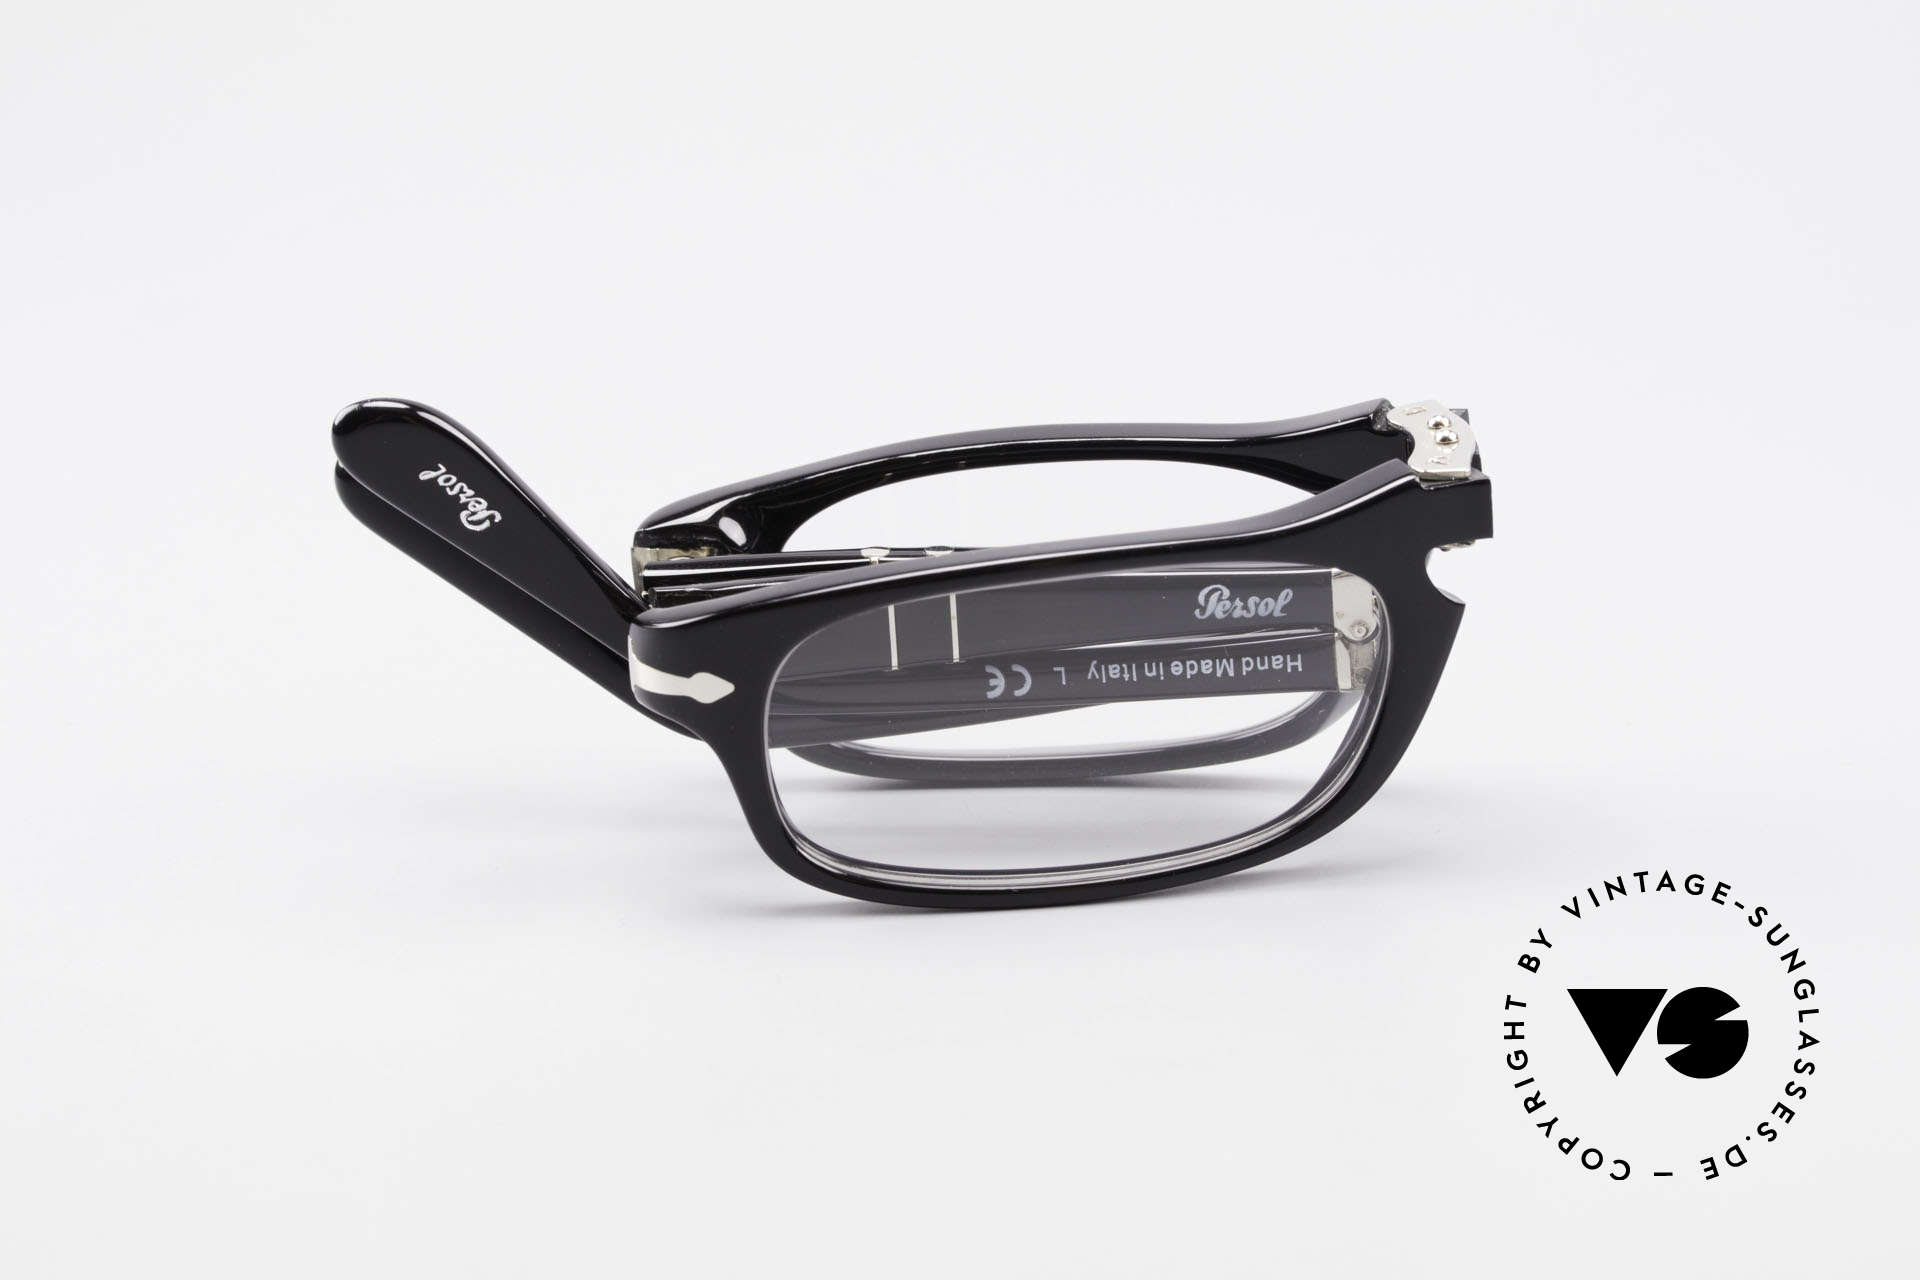 Persol 2886 Folding Reading Eyeglasses Foldable, foldable frame, handmade in Italy at an affordable price, Made for Men and Women